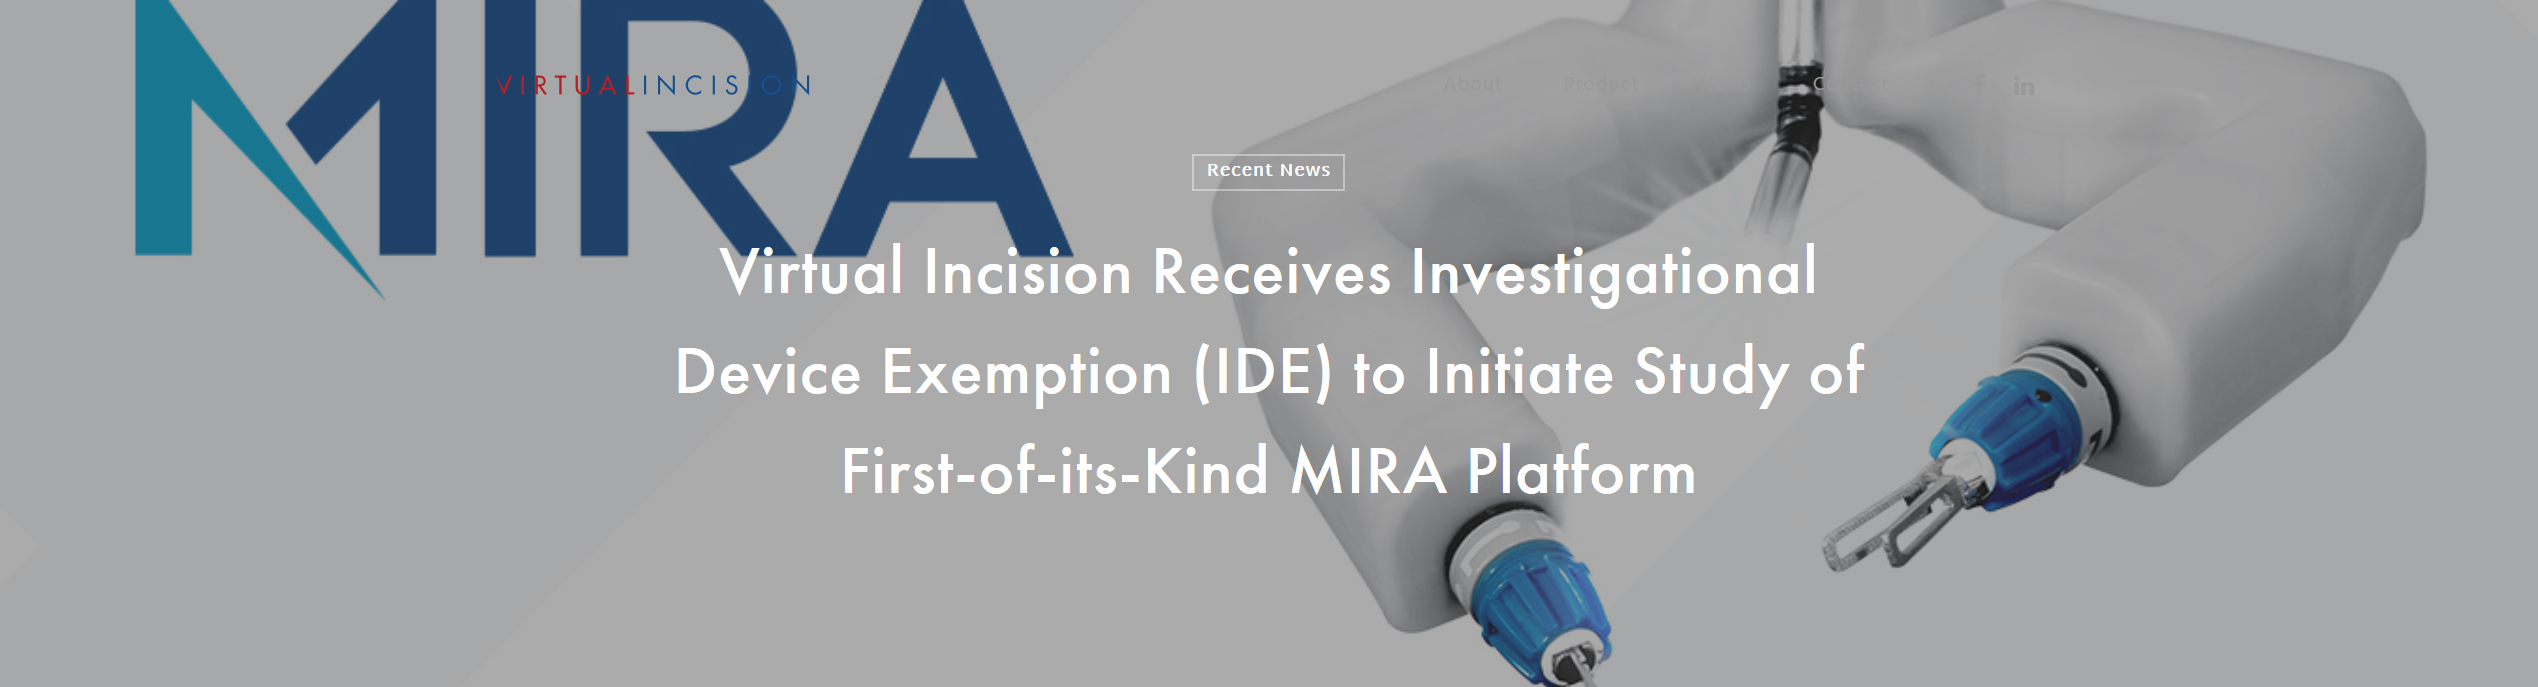 Virtual Incision Receives Investigational Device Exemption (IDE) to Initiate Study of First-of-its-Kind MIRA Platform